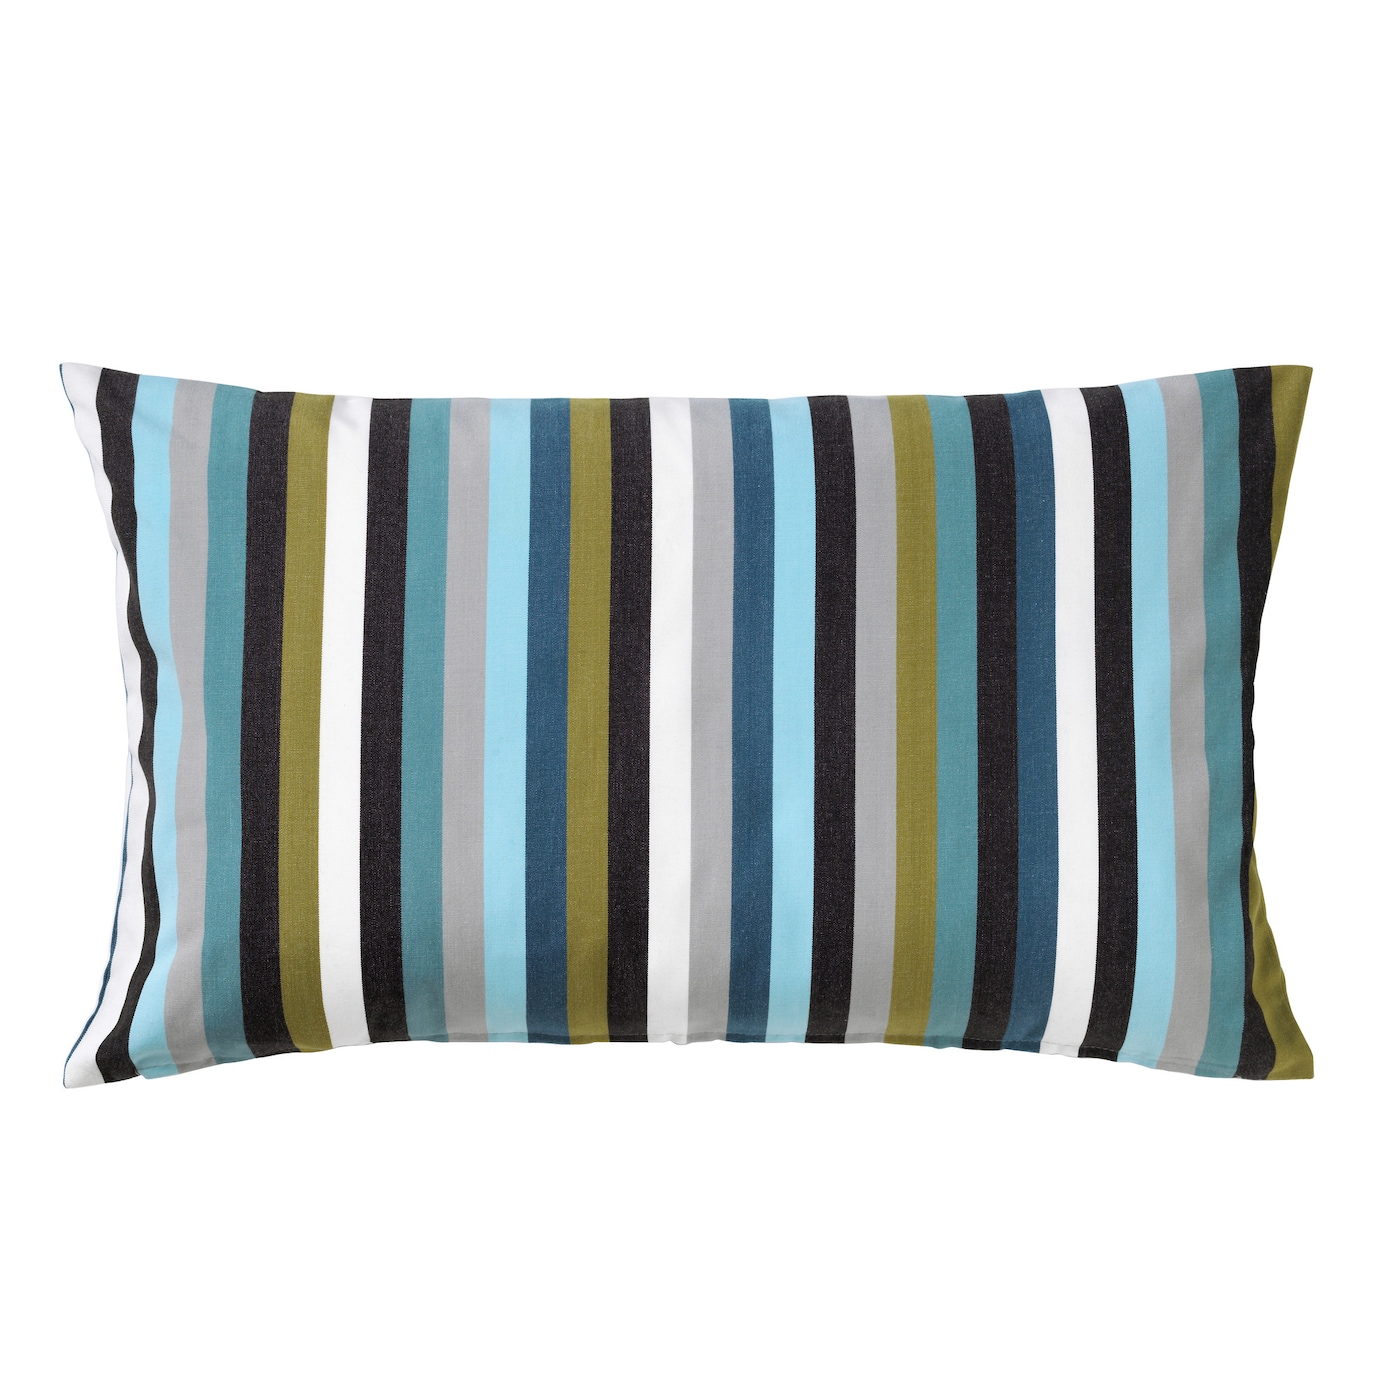 …KERMADD Cushion cover Green blue 40x65 cm IKEA